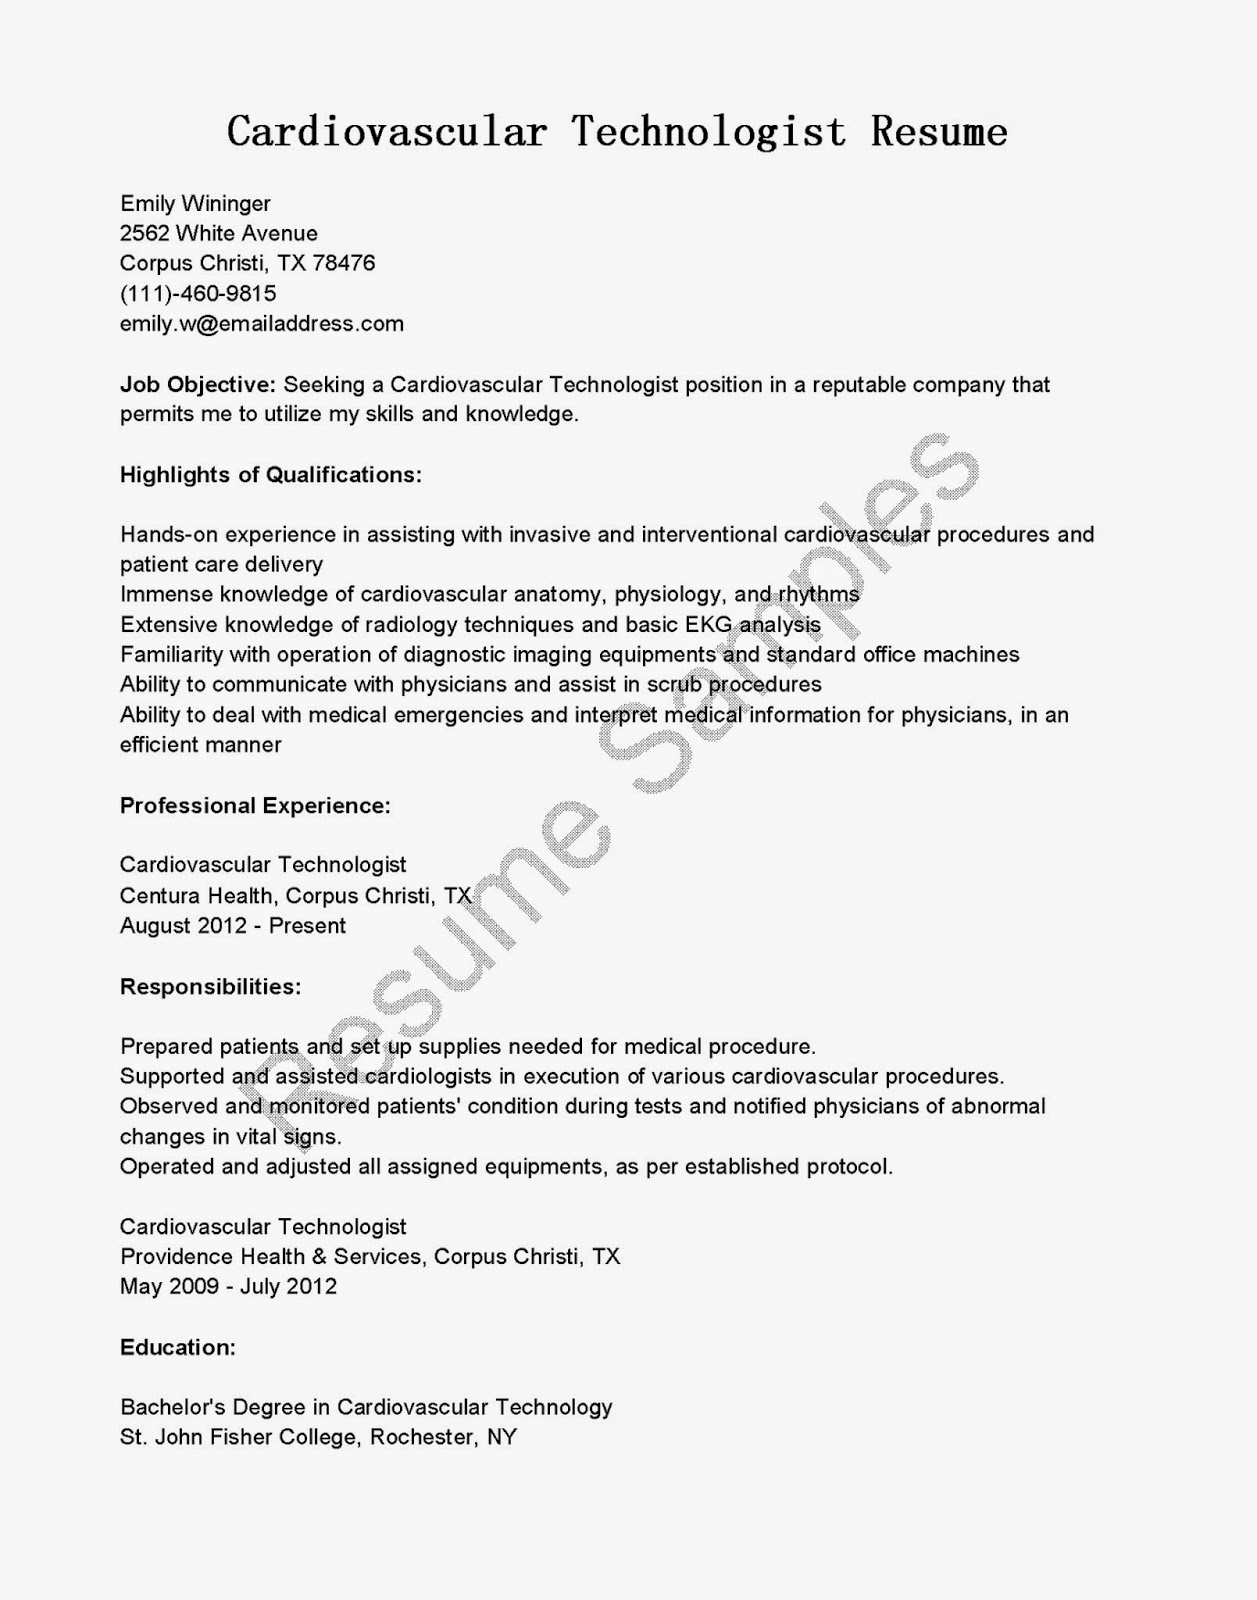 resume samples  cardiovascular technologist resume sample